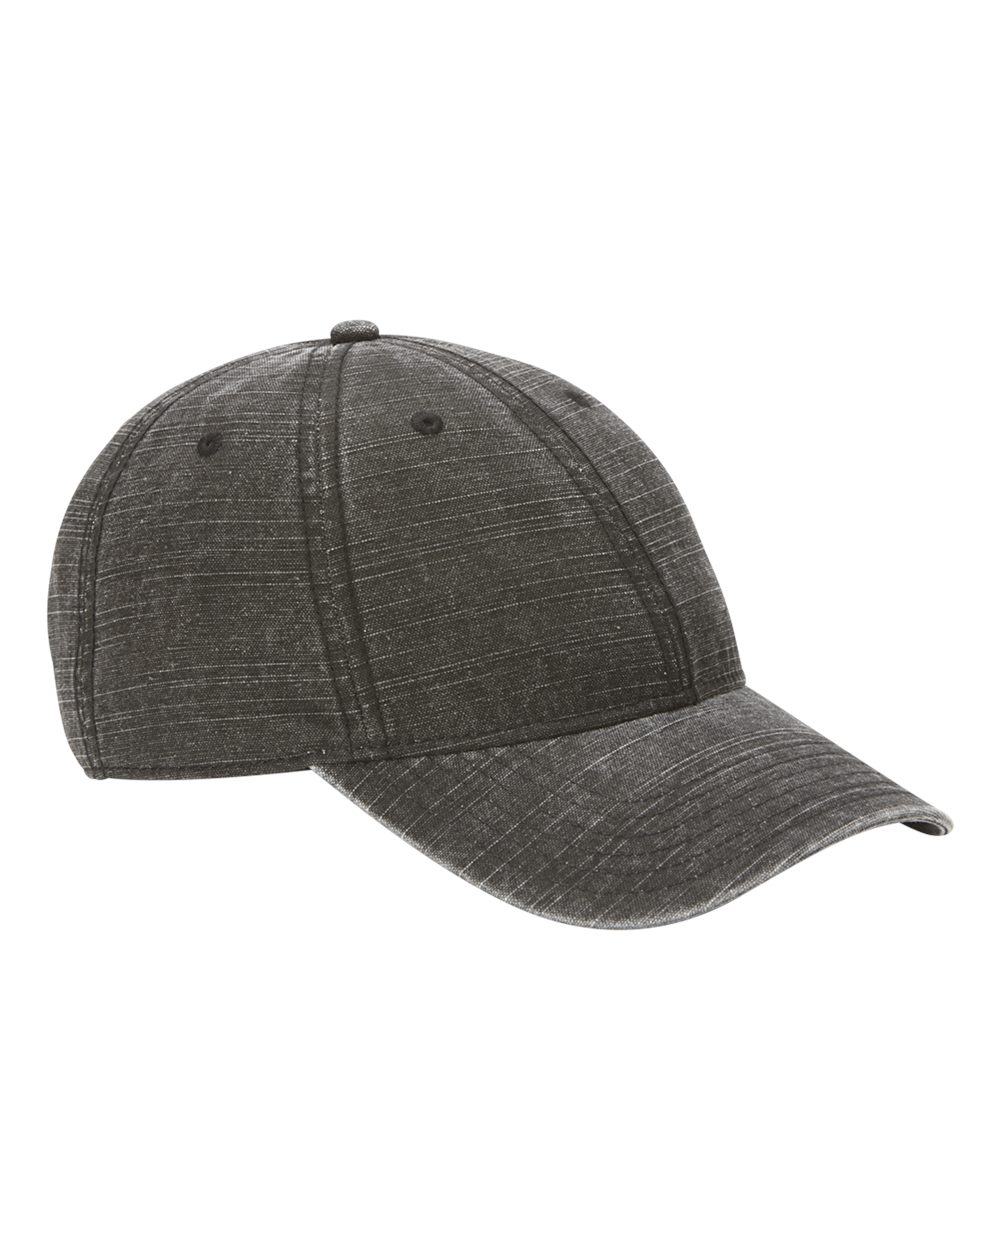 Sportsman Caps SP440 - Slub Fabric Dad Cap